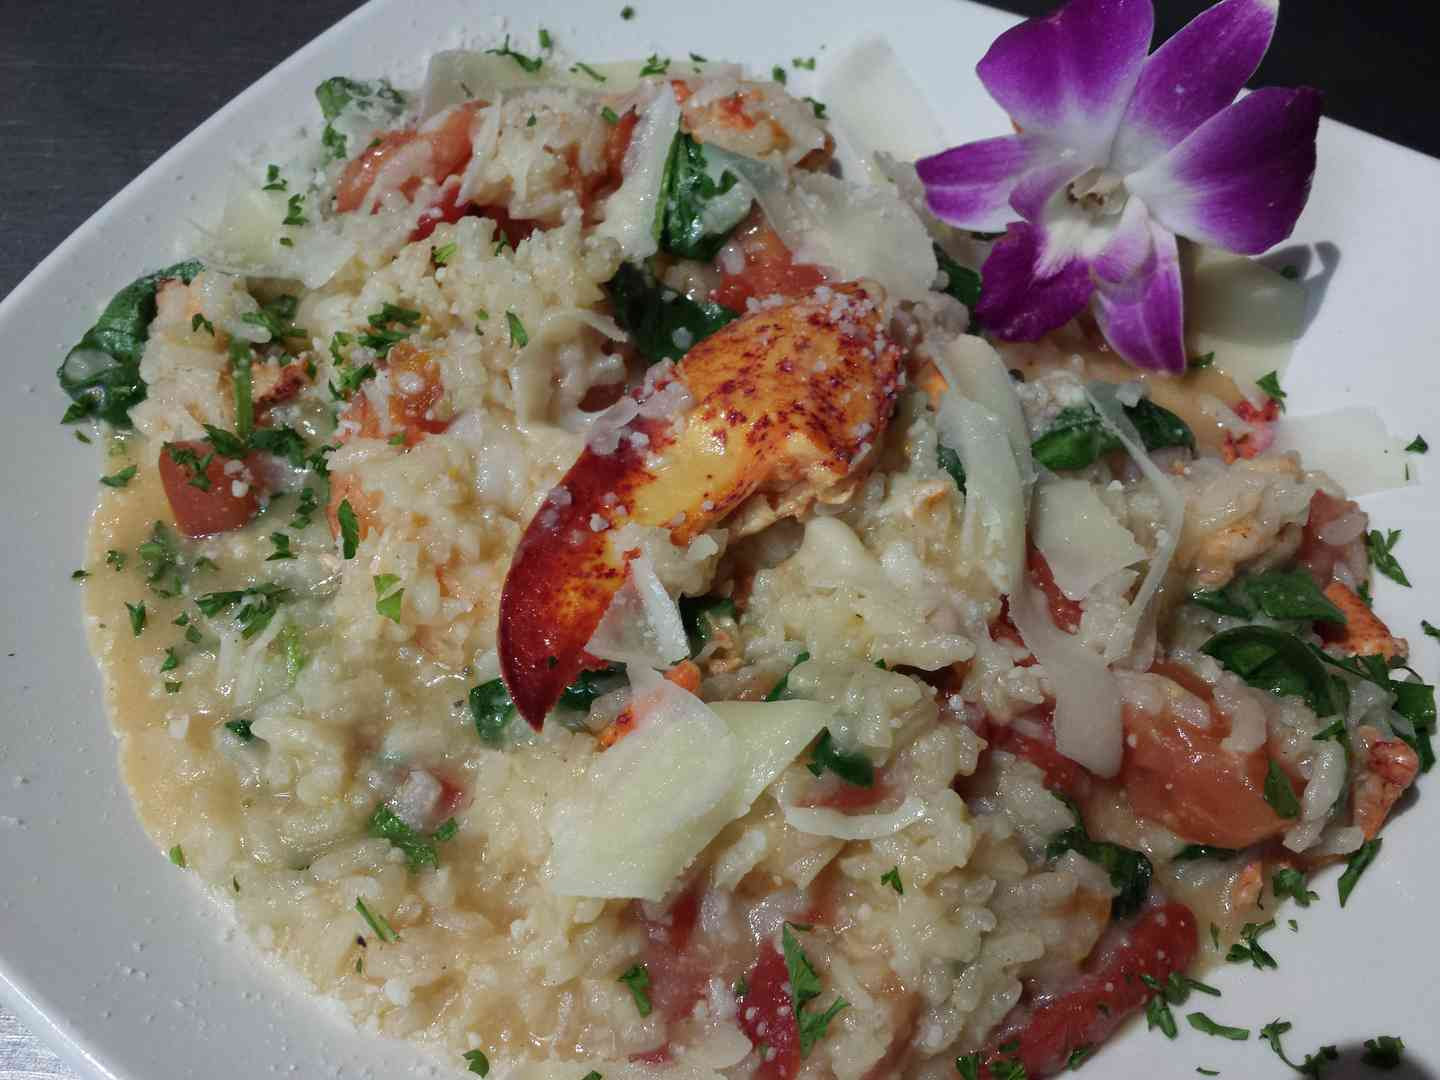 LOBSTER & SRHIMP RISOTTO